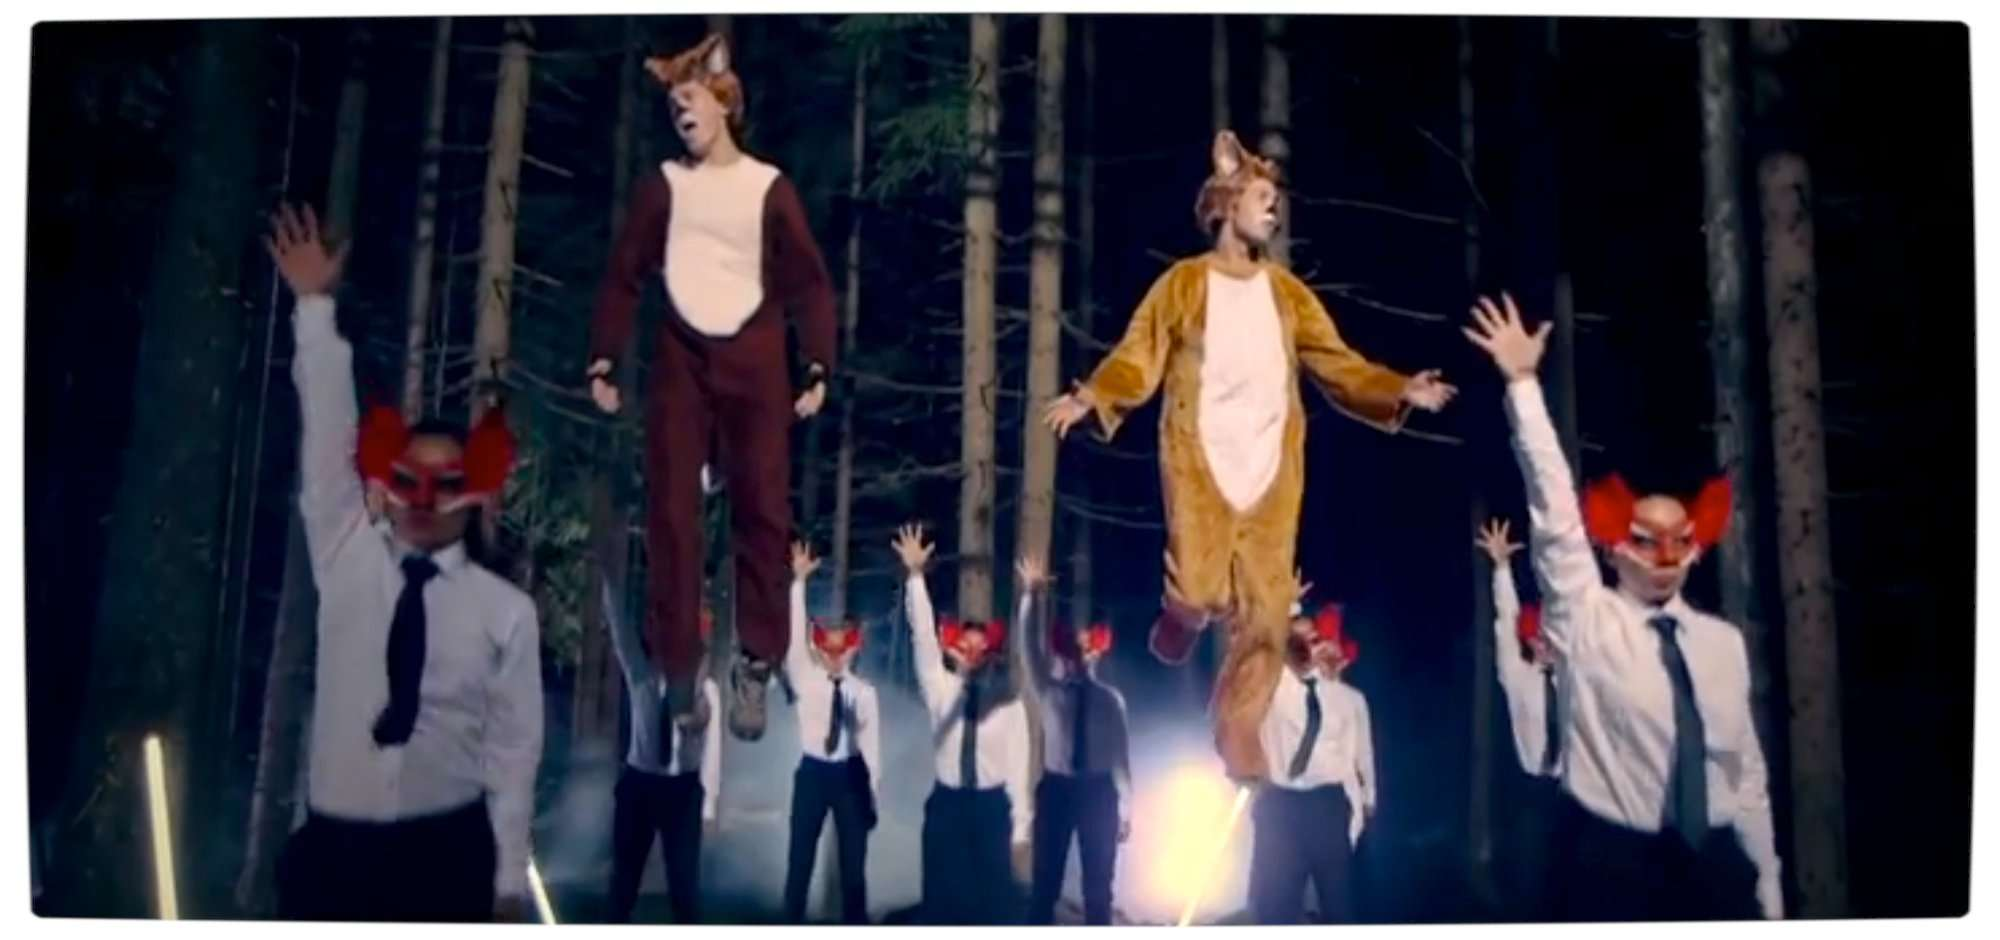 Vamers - FIY - Ermahgerd - What does the Fox say - Ylvis has the answer - Flying Foxes